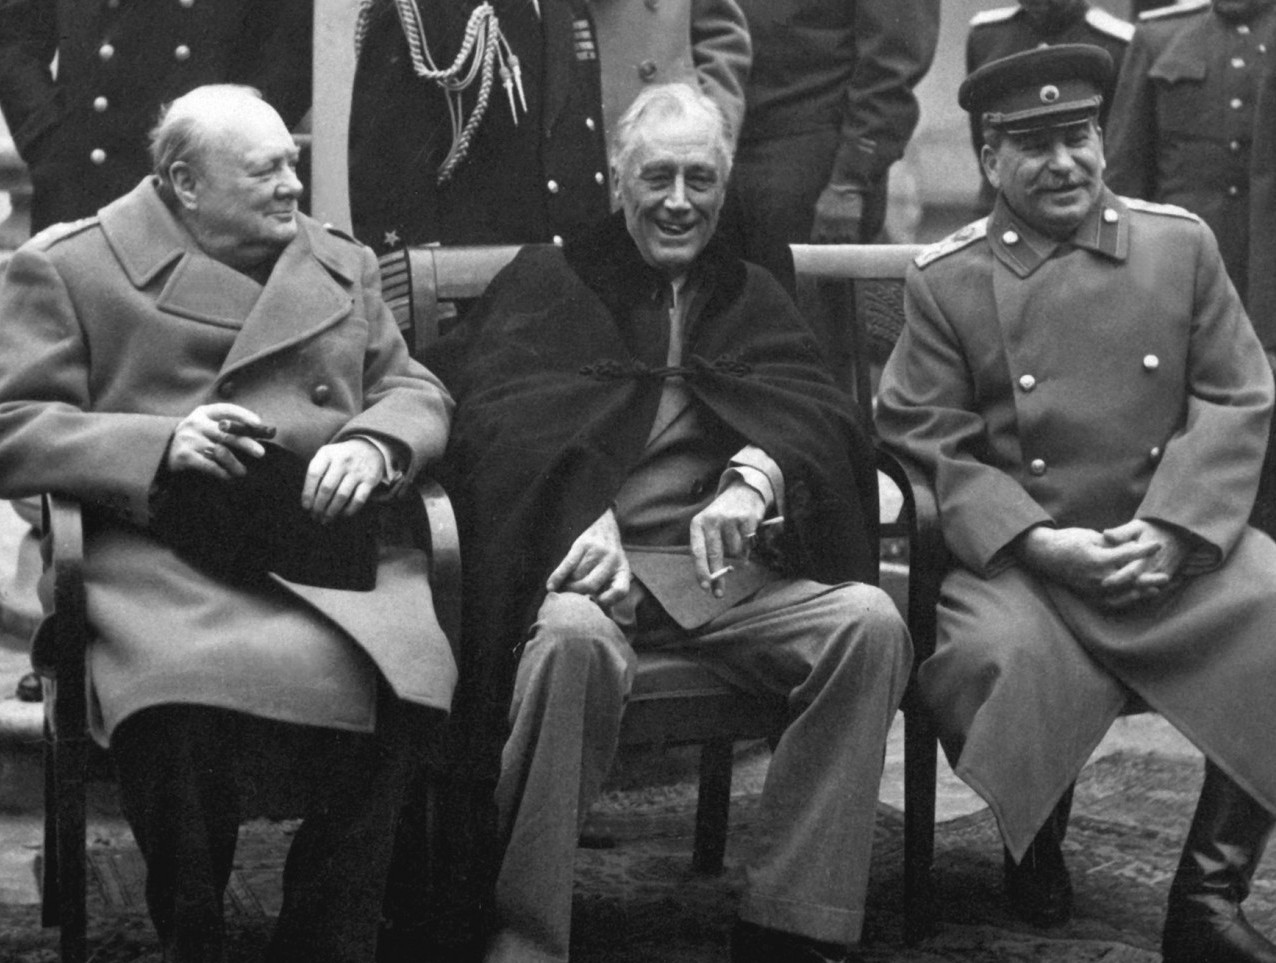 """Big Three"" at Yalta in February 1945: Prime Minister Winston Churchill, President Franklin D. Roosevelt, and Premier Josef Stalin. Source: National Archives and Records Administration, Public domain."